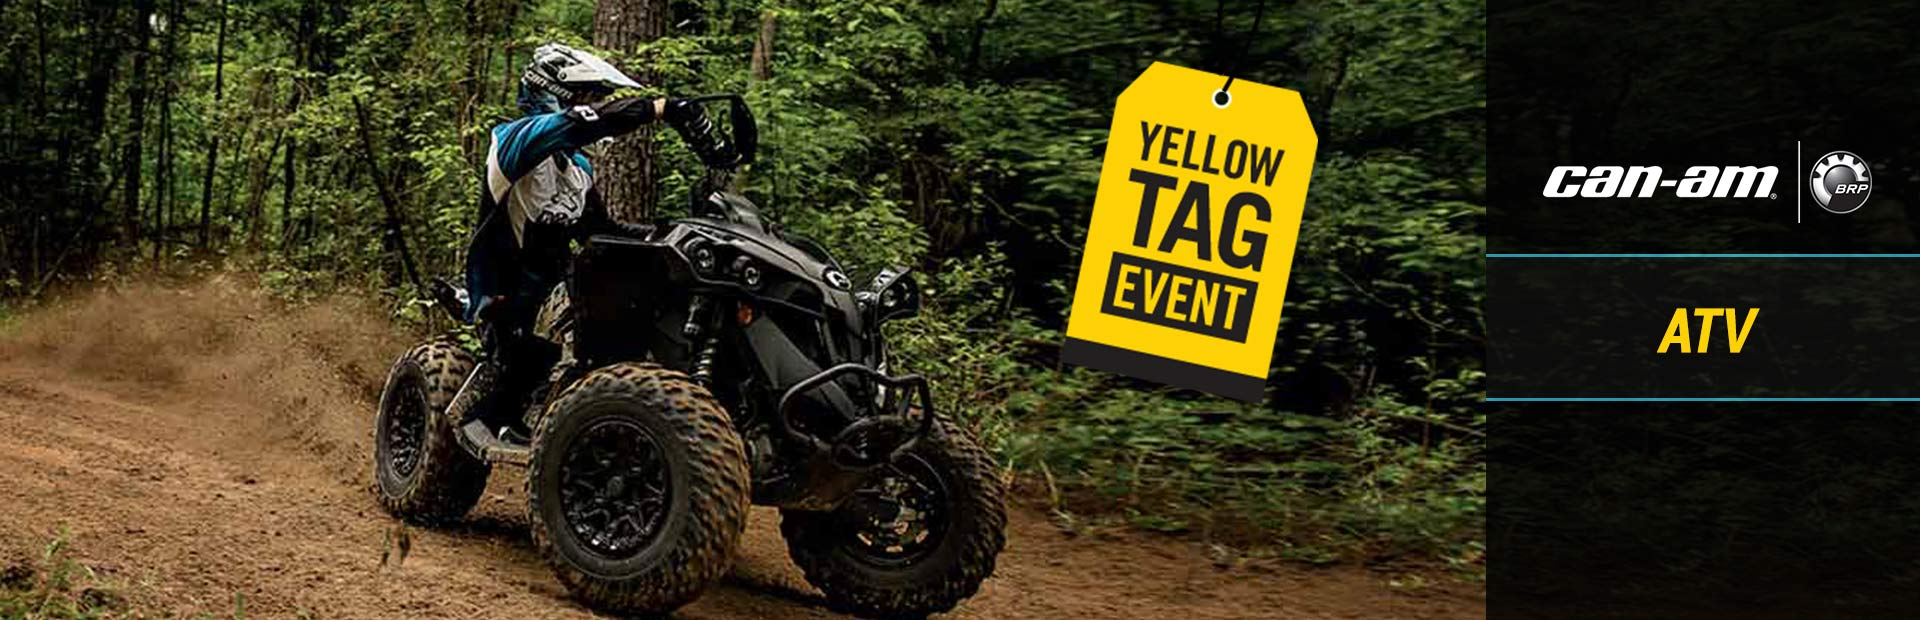 Can-Am: Yellow Tag Event (ATV)